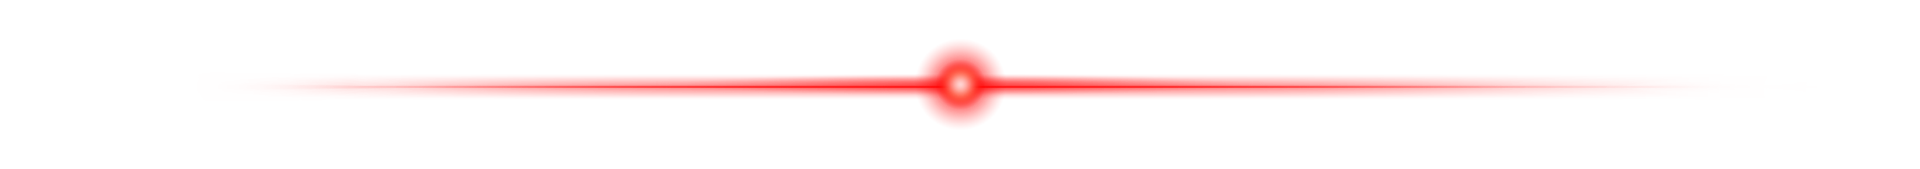 Red effects png. The cricket animation visual